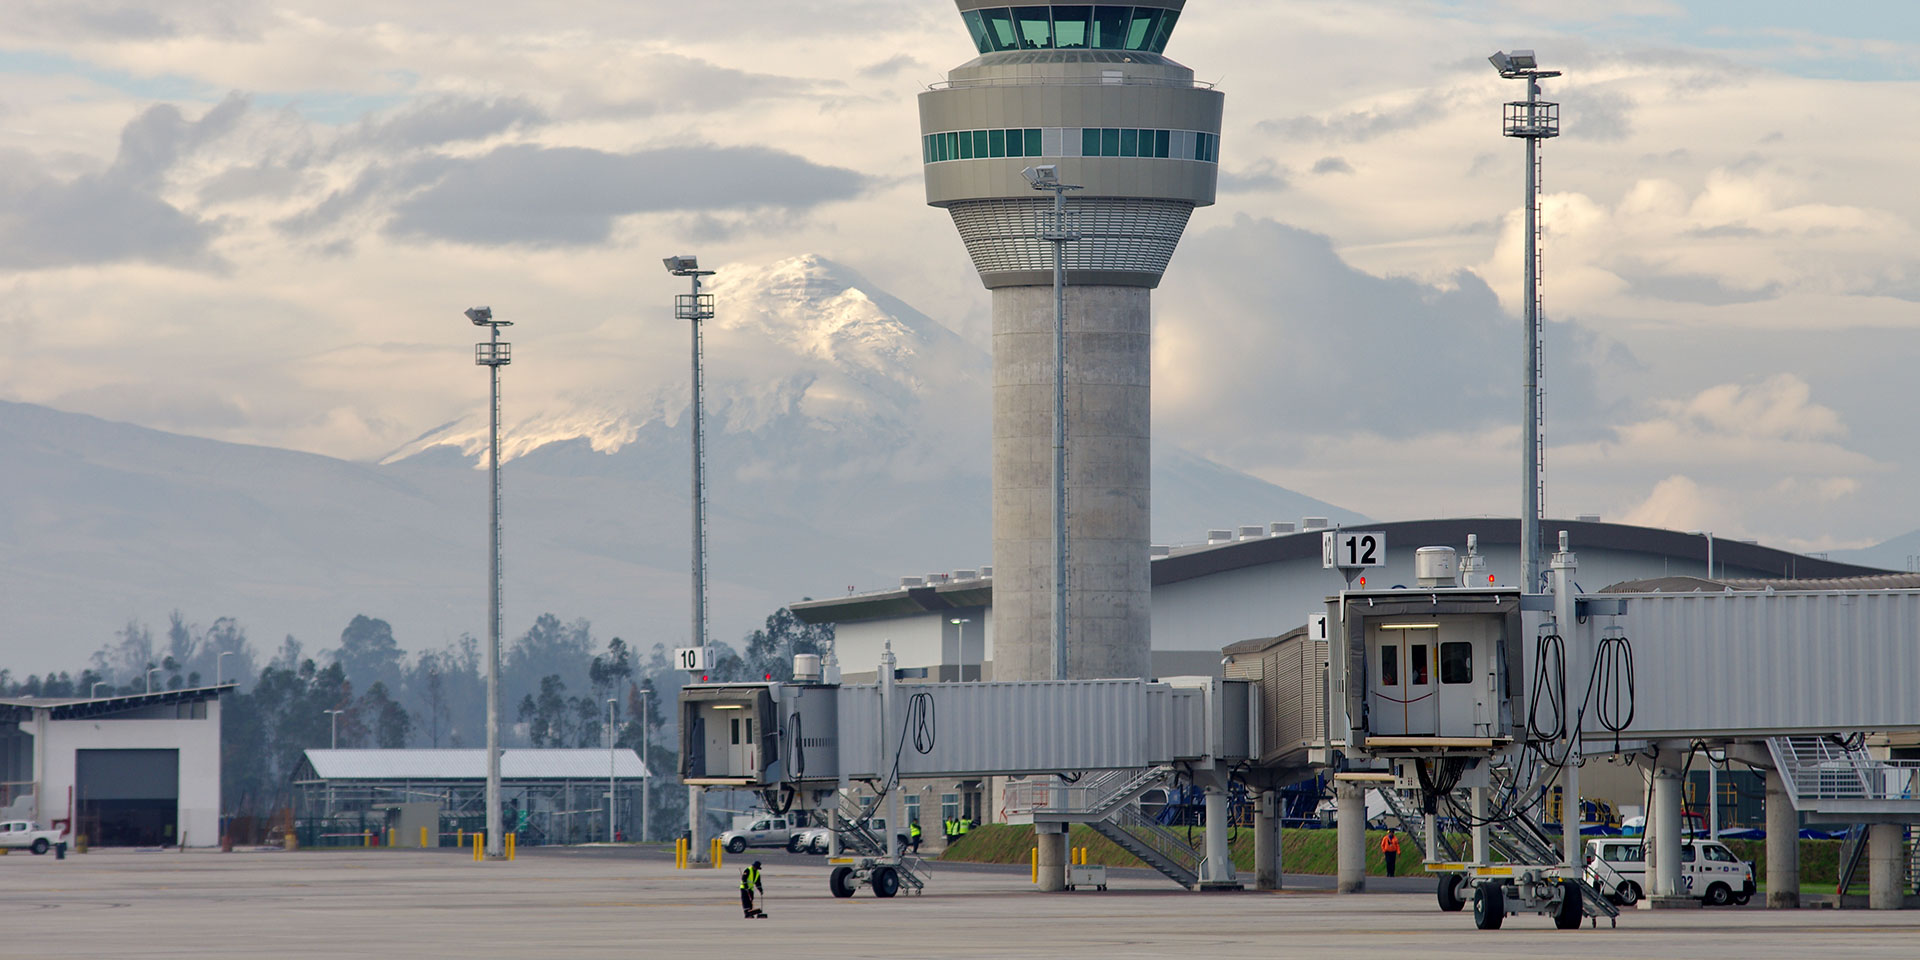 Quito Airport Tower